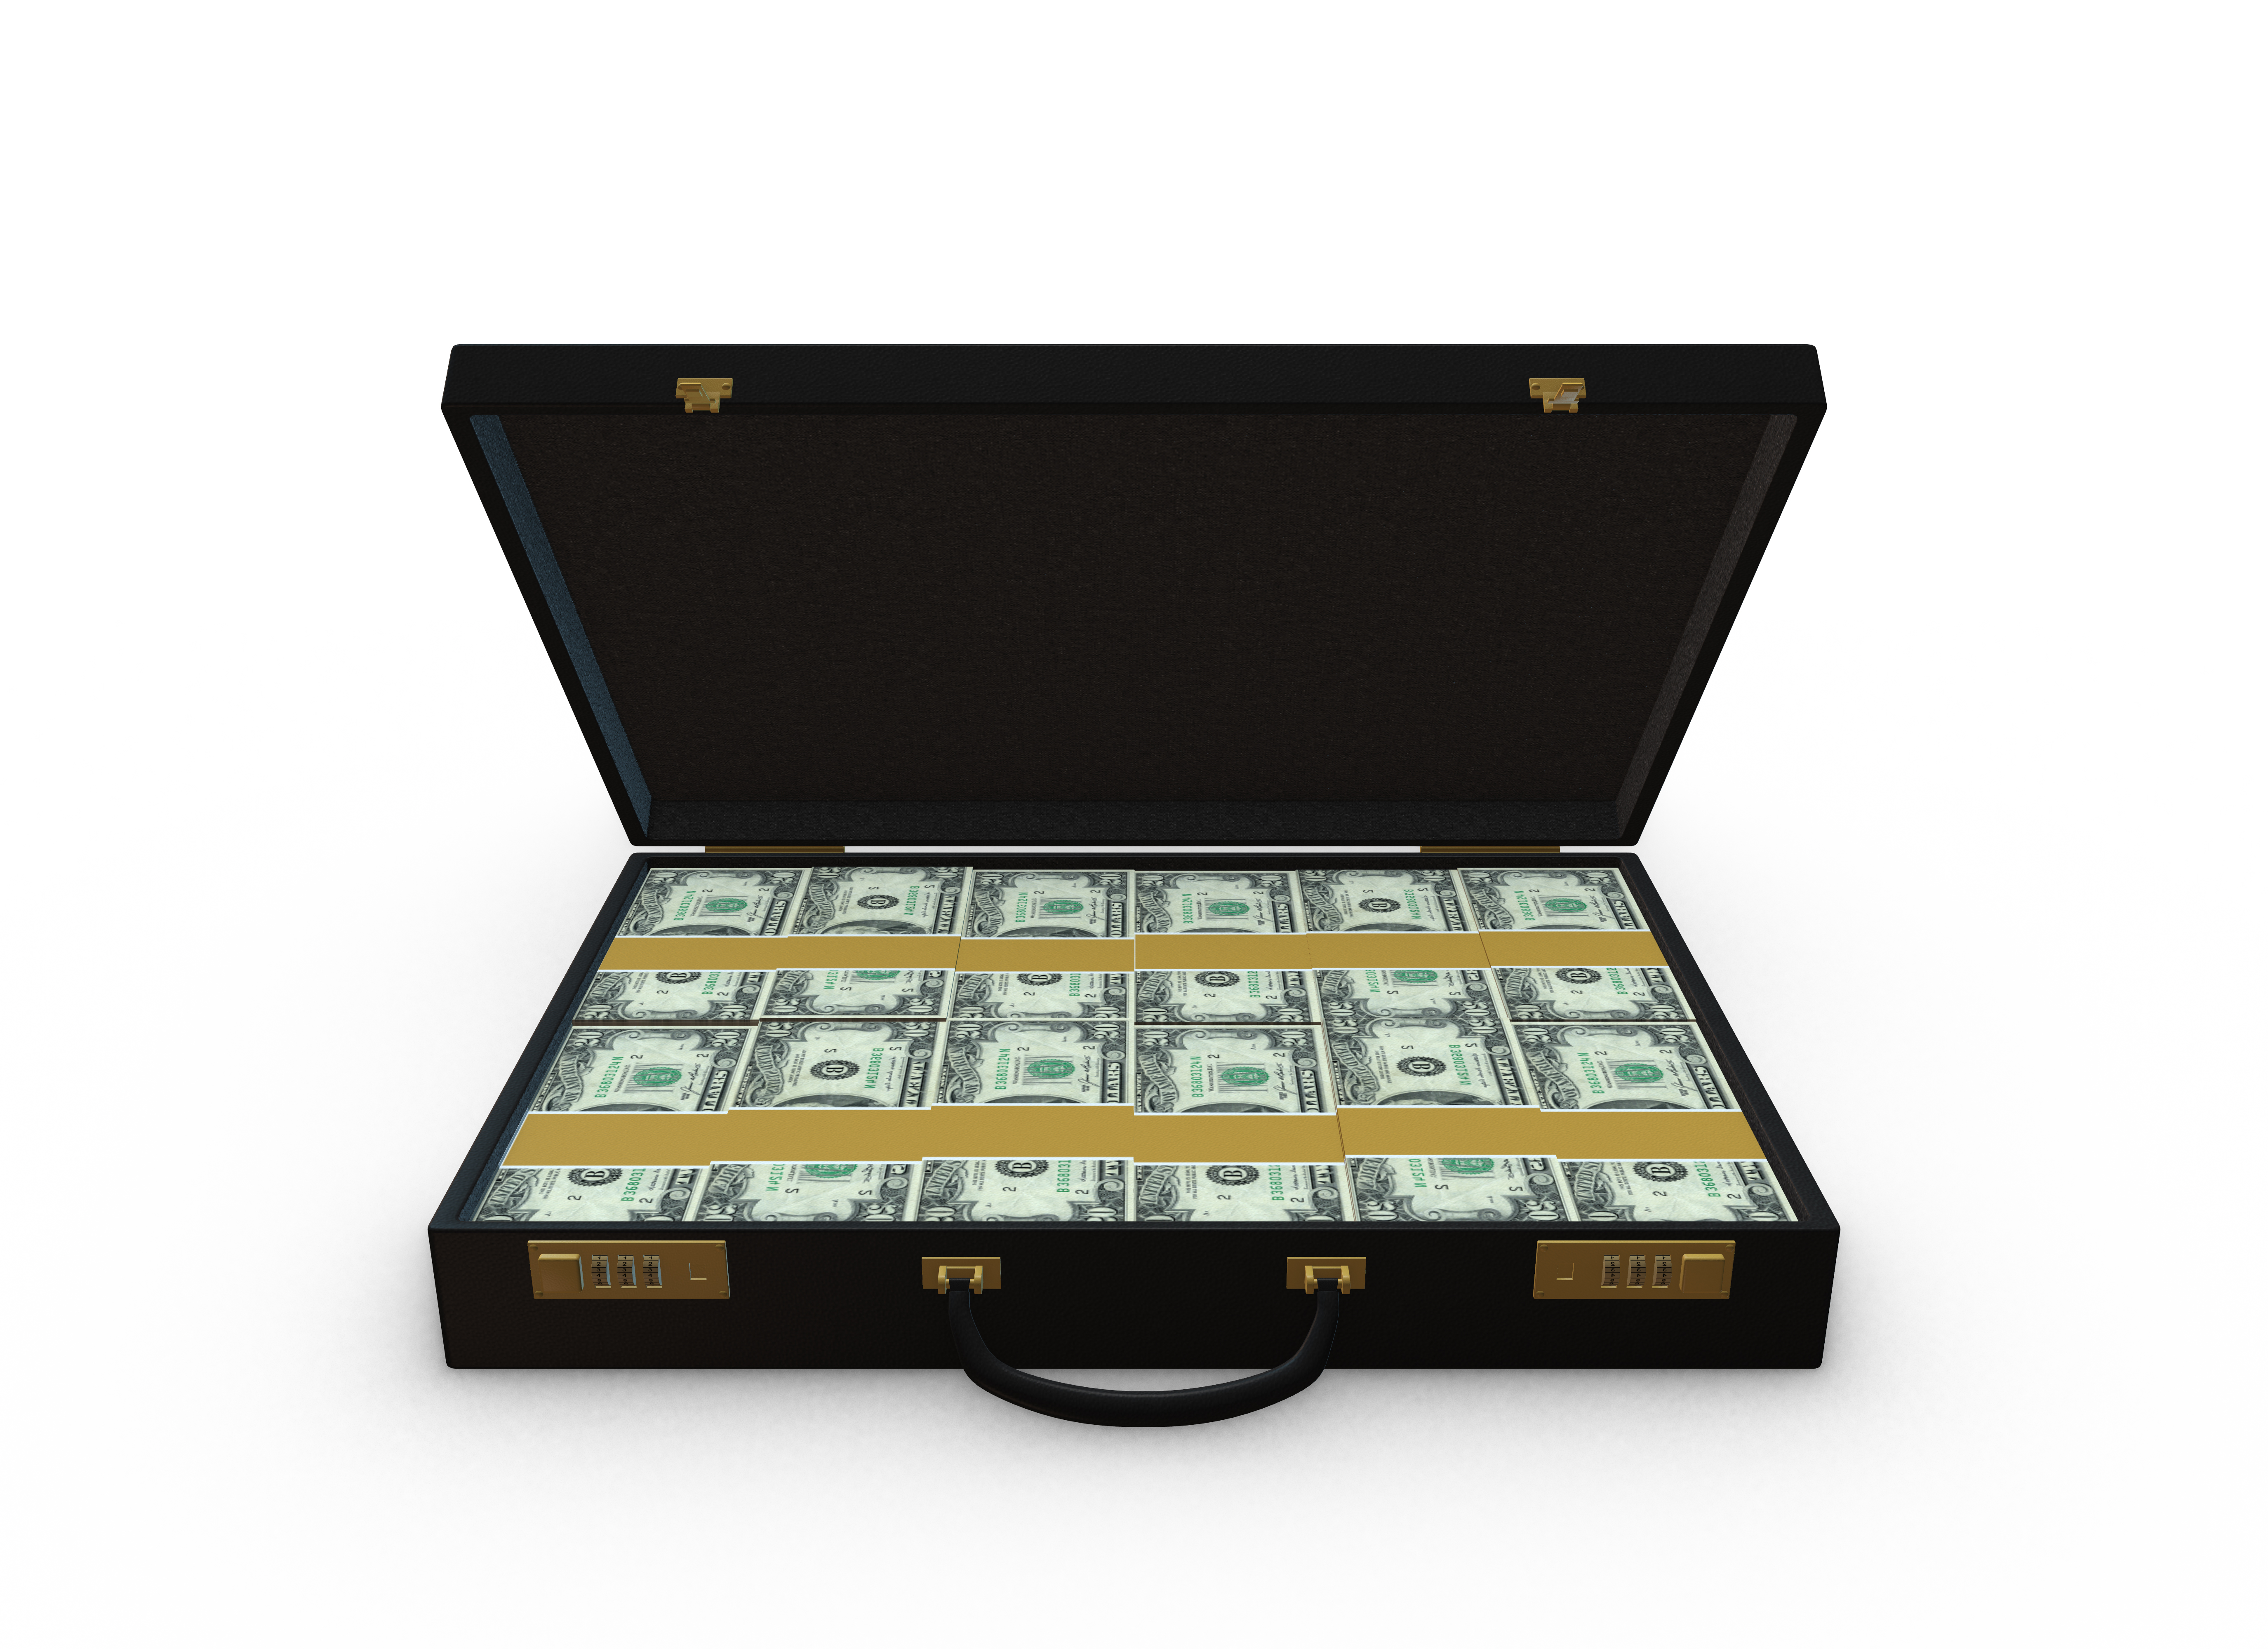 Is There a Limit on the Amount of Money That Can Be Deposited at